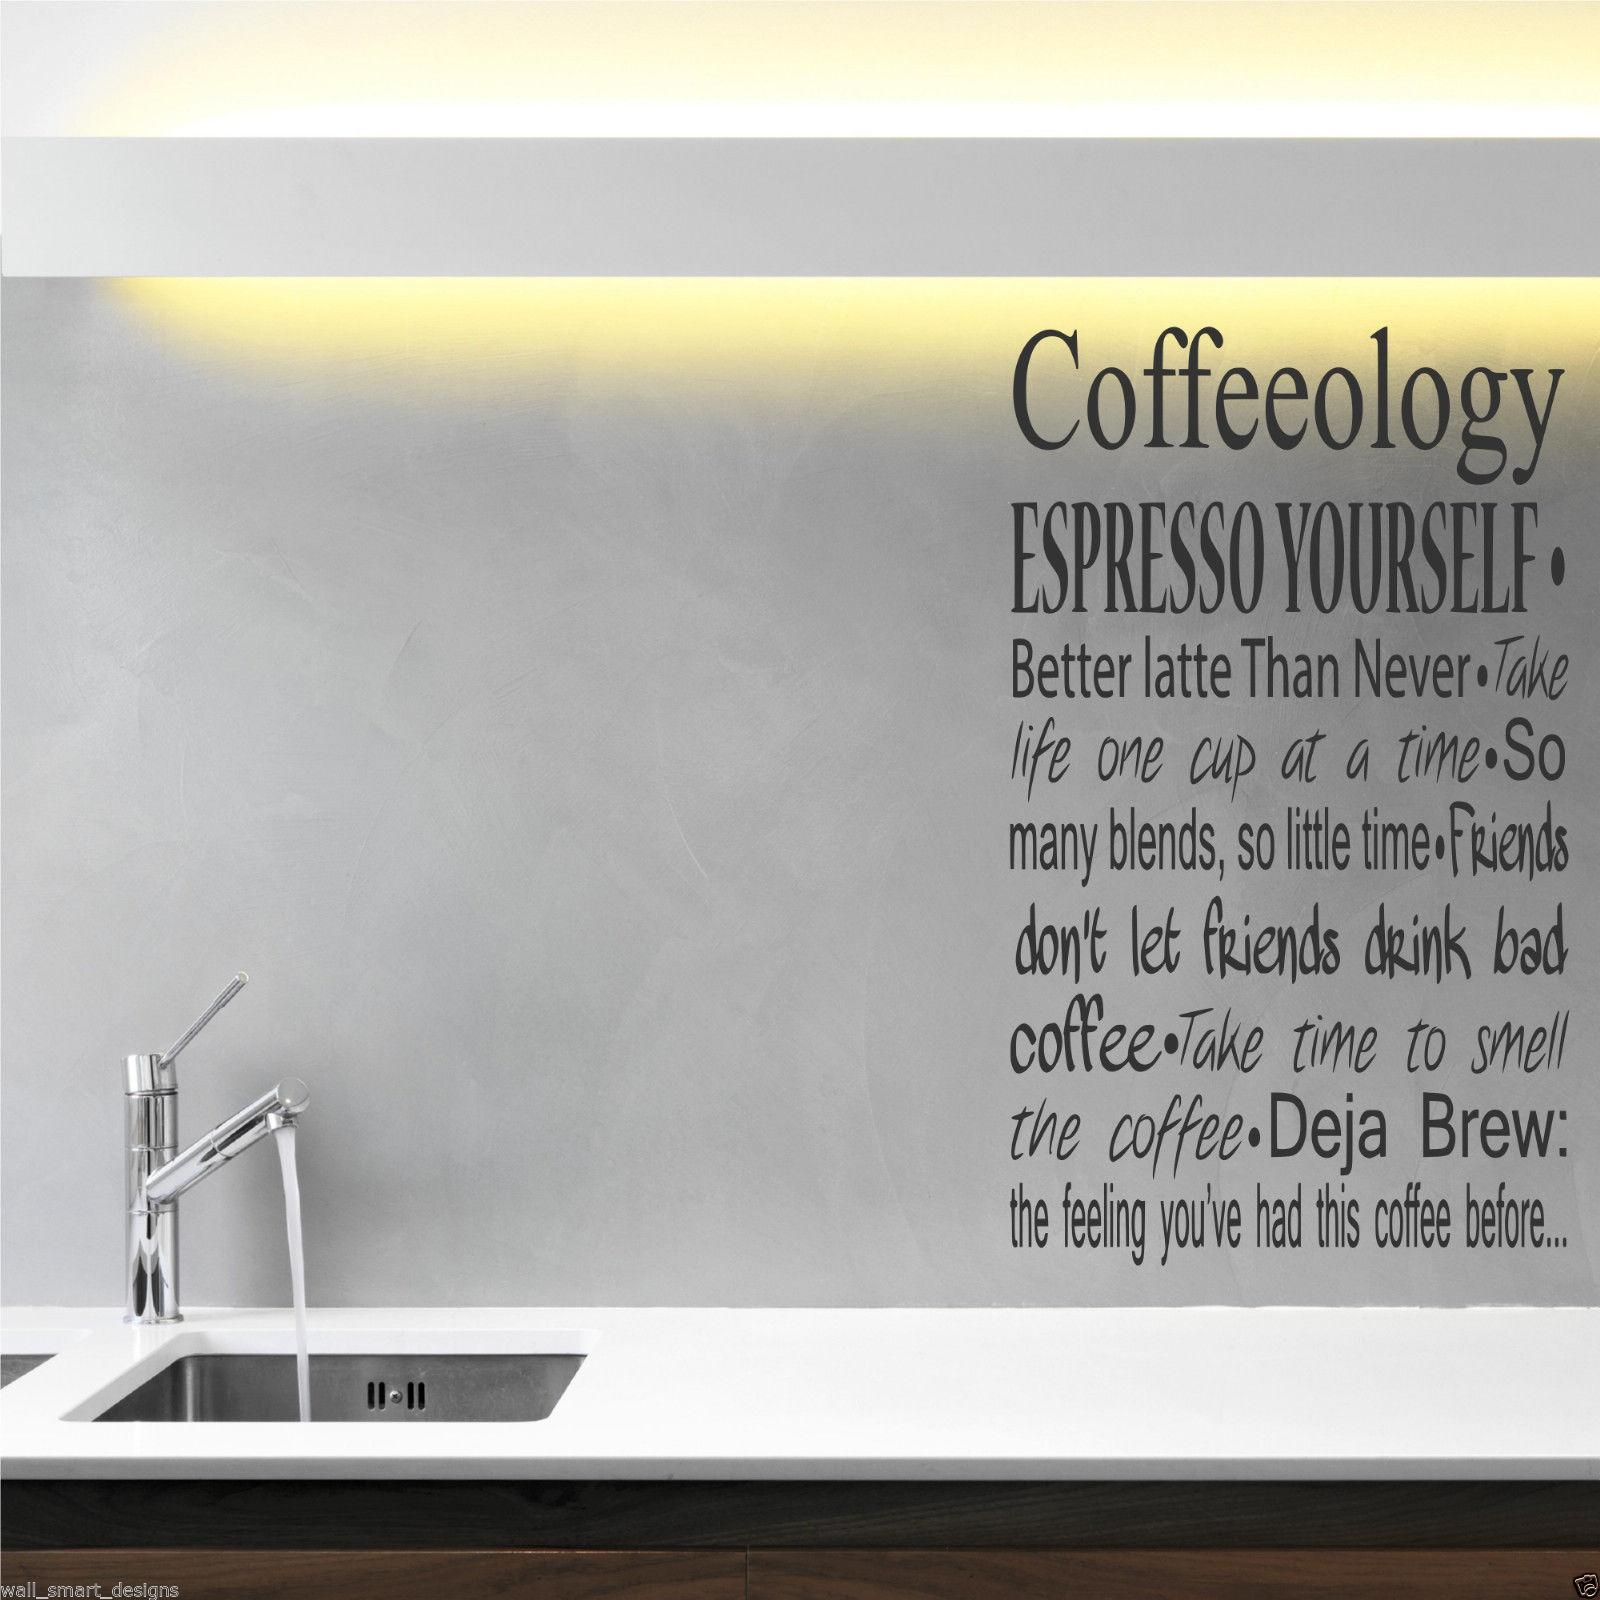 Coffee Coffeeology Kitchen Wall Art Sticker Quote Decal Mural Throughout Cafe Latte Kitchen Wall Art (Image 6 of 20)